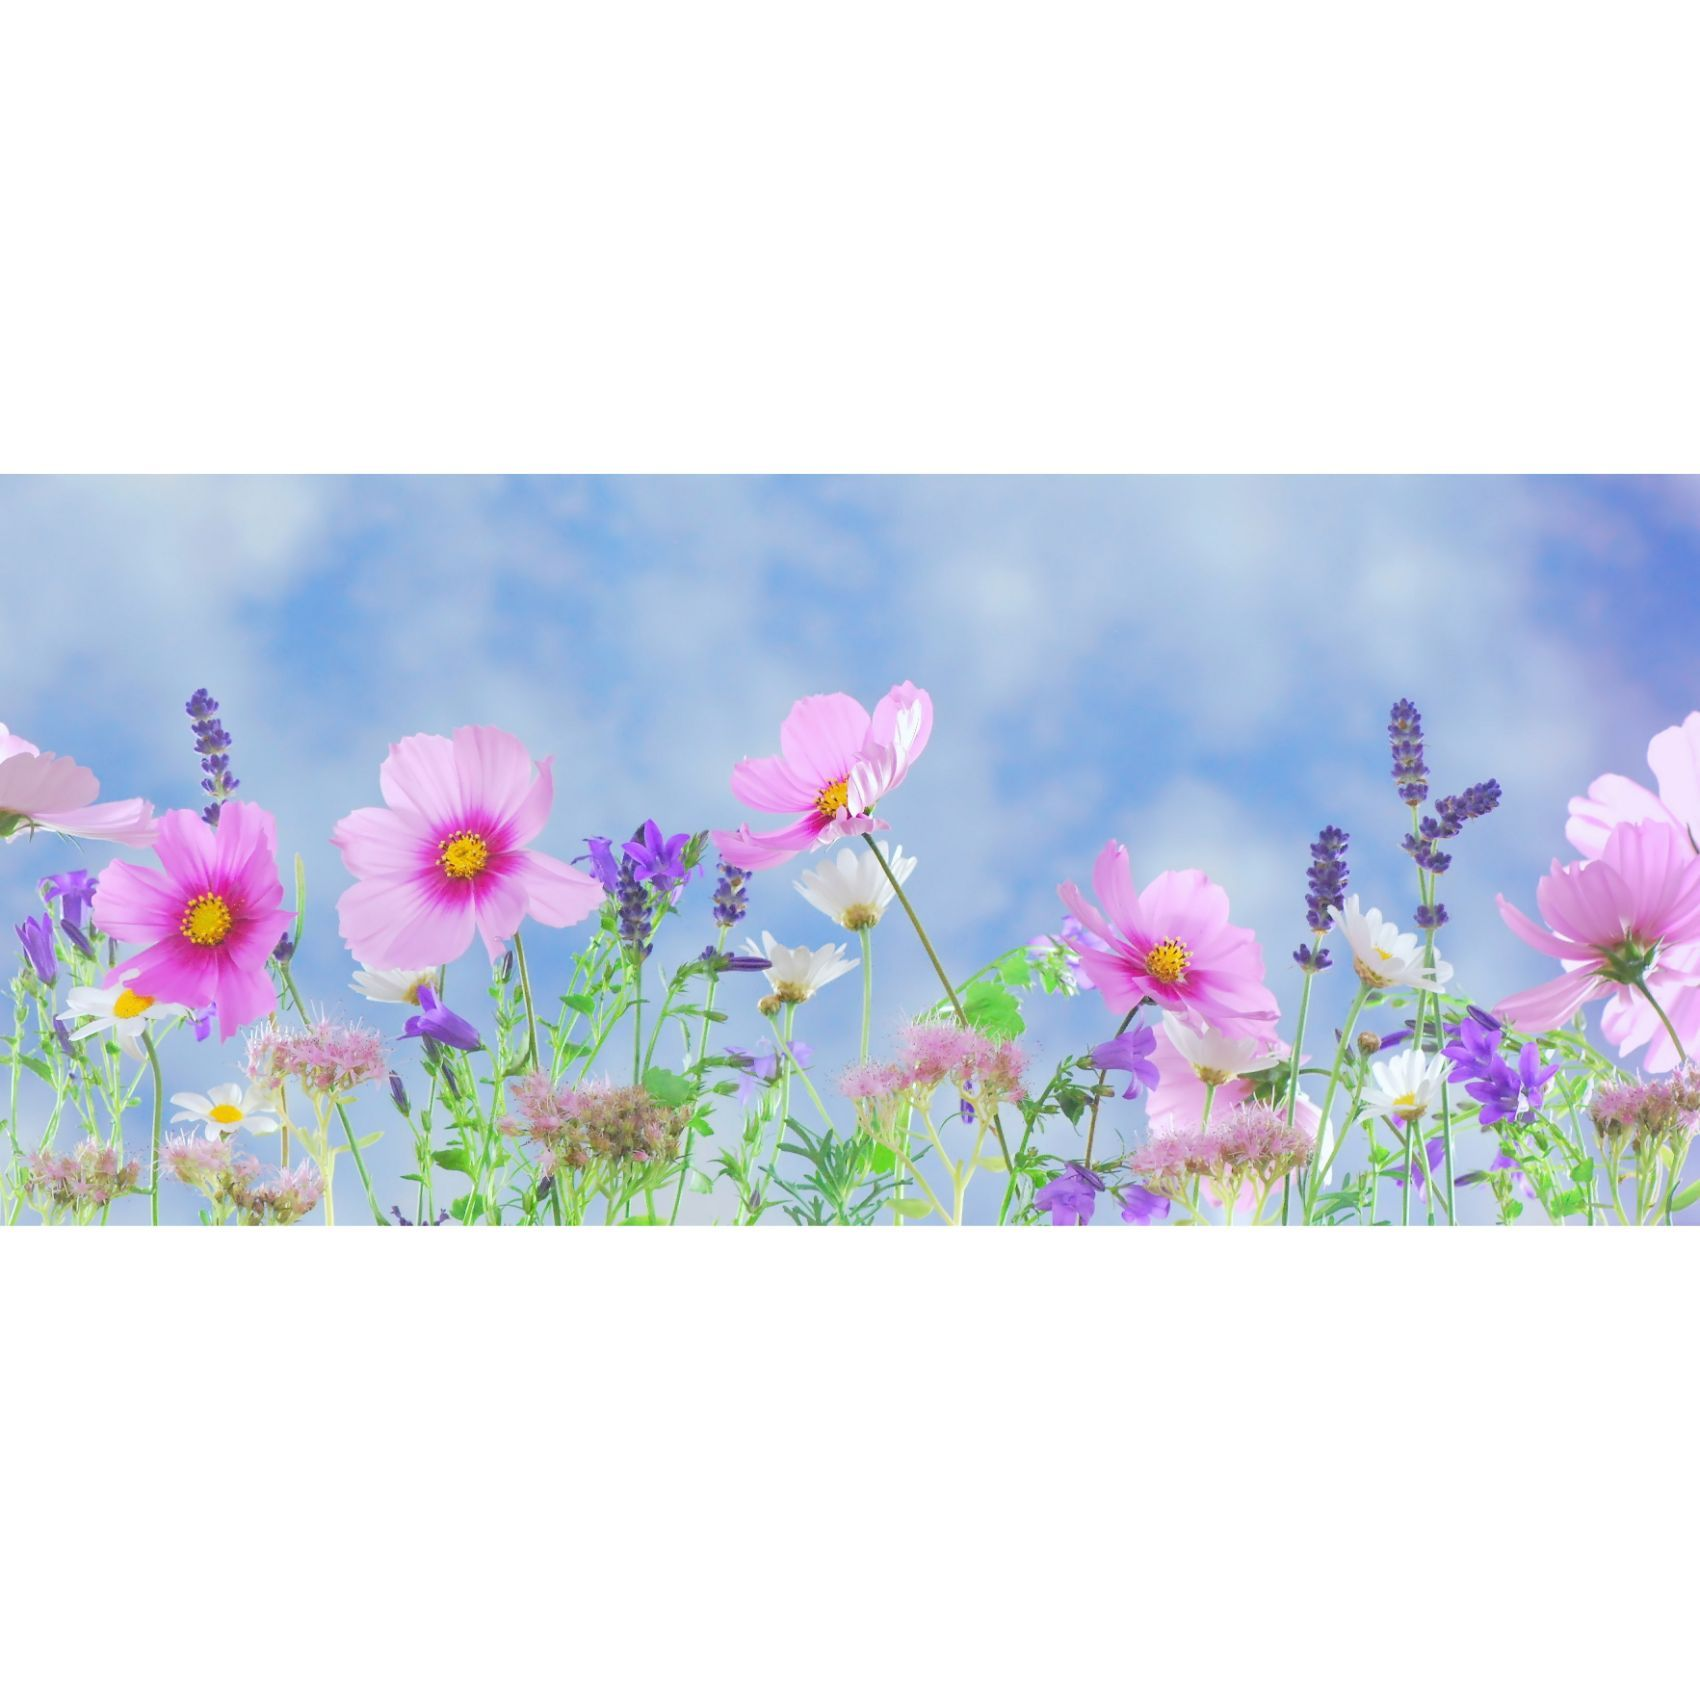 Discovering Mercy-Believing Matters-Field of Wildflowers